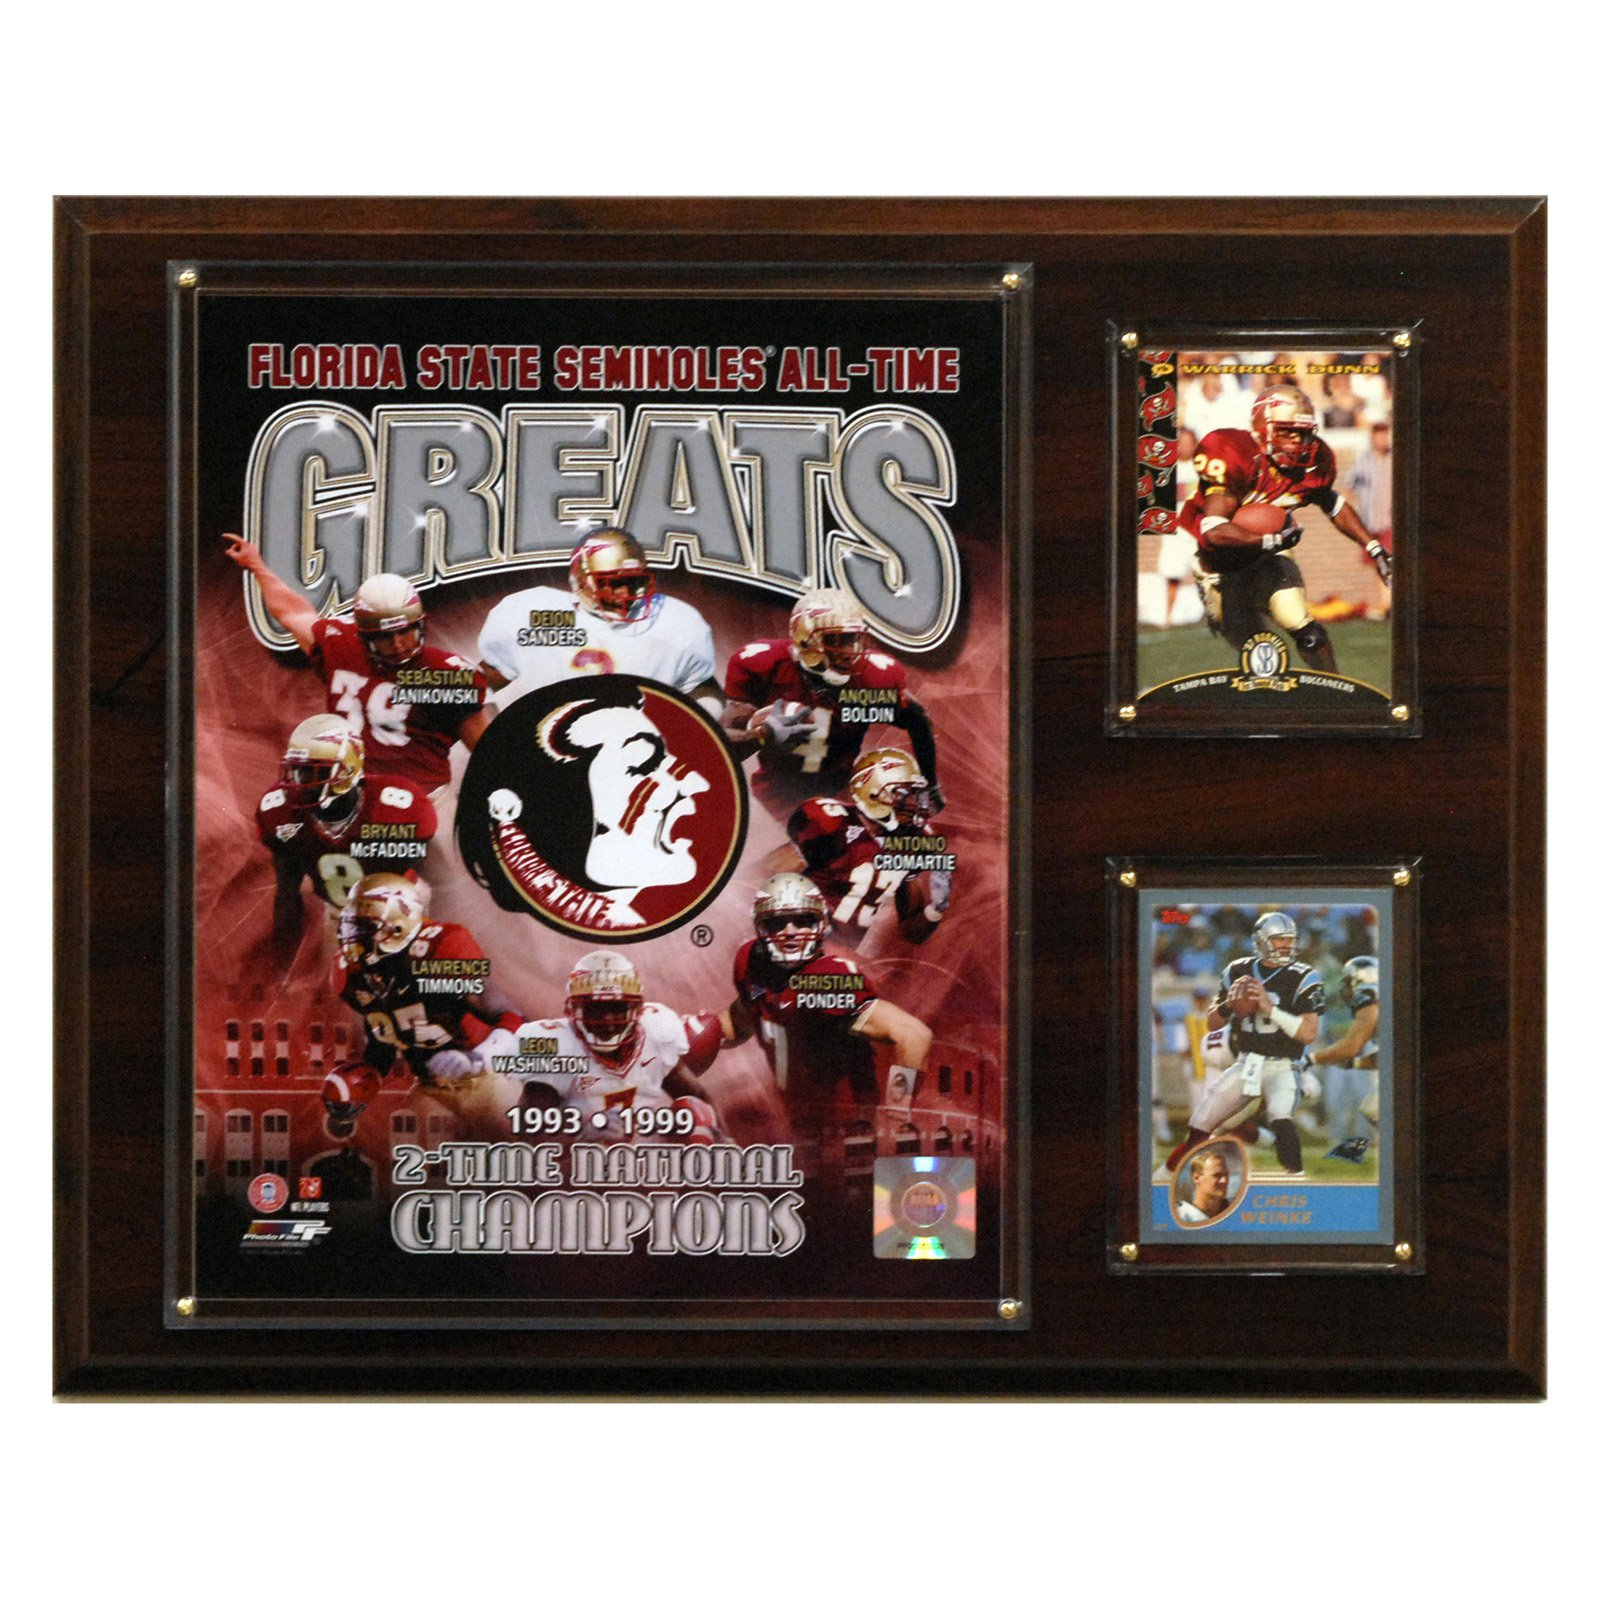 NCAA Football 12 x 15 in. Florida State Seminoles All-Time Greats Photo Plaque